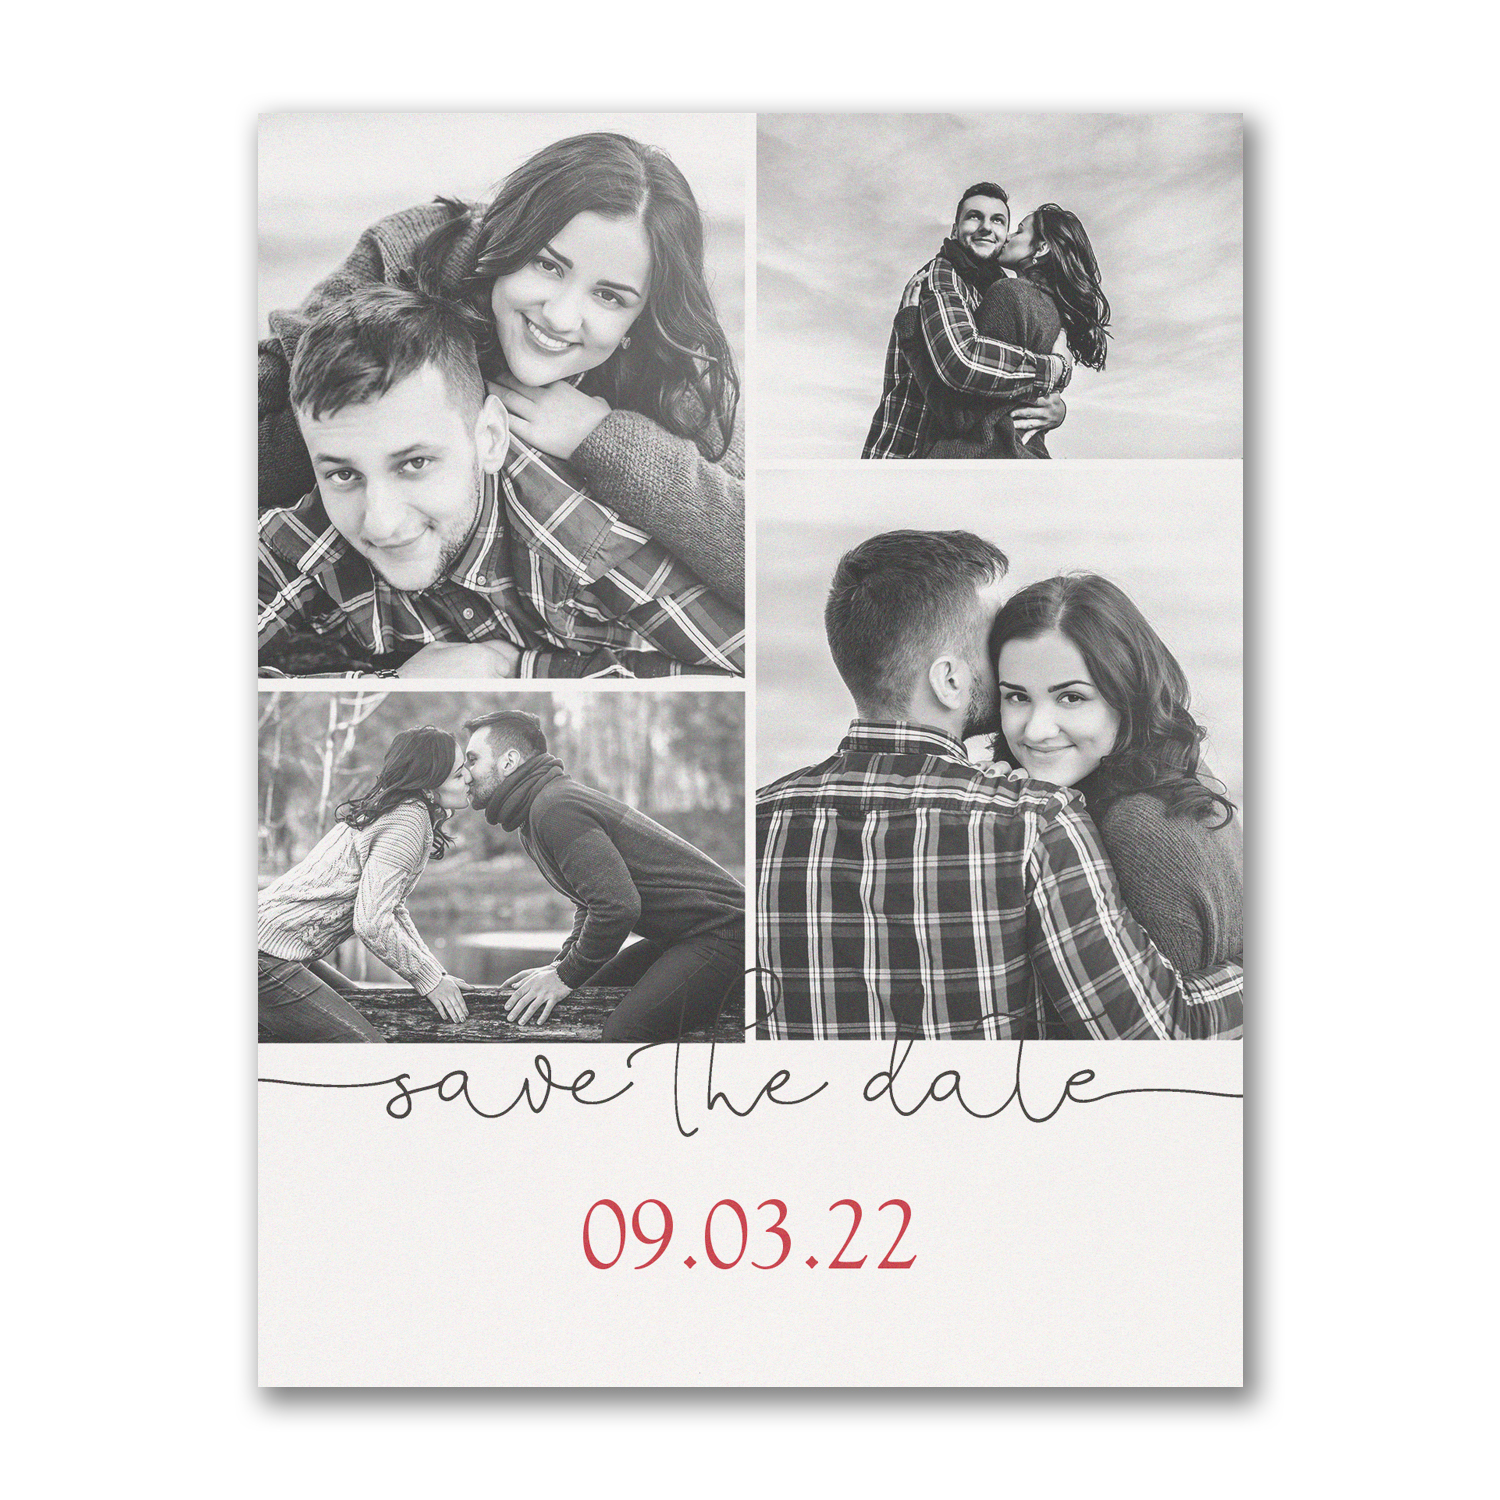 beautiful date photo collage save the date carlson craft